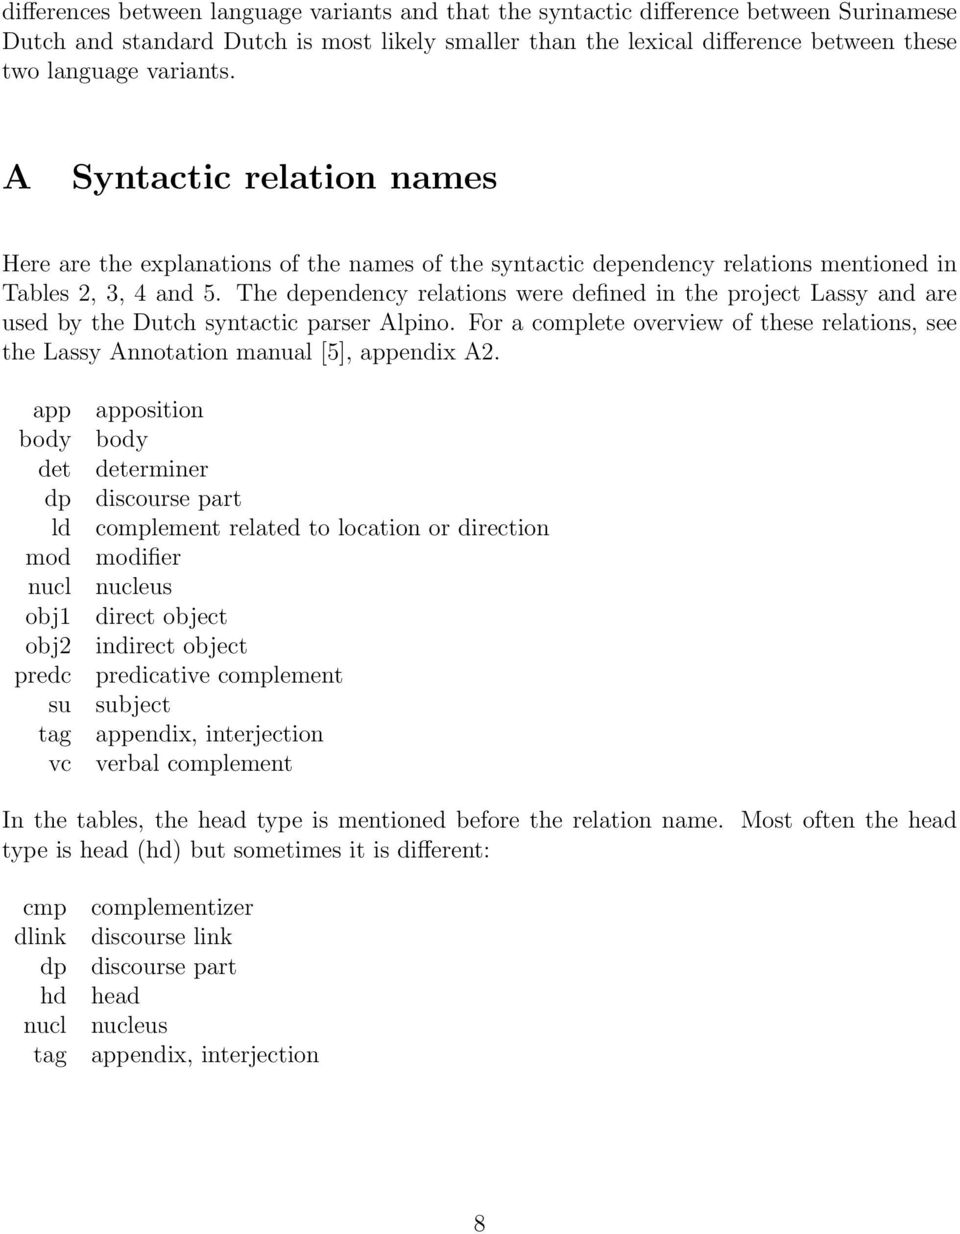 The dependency relations were defined in the project Lassy and are used by the Dutch syntactic parser Alpino.